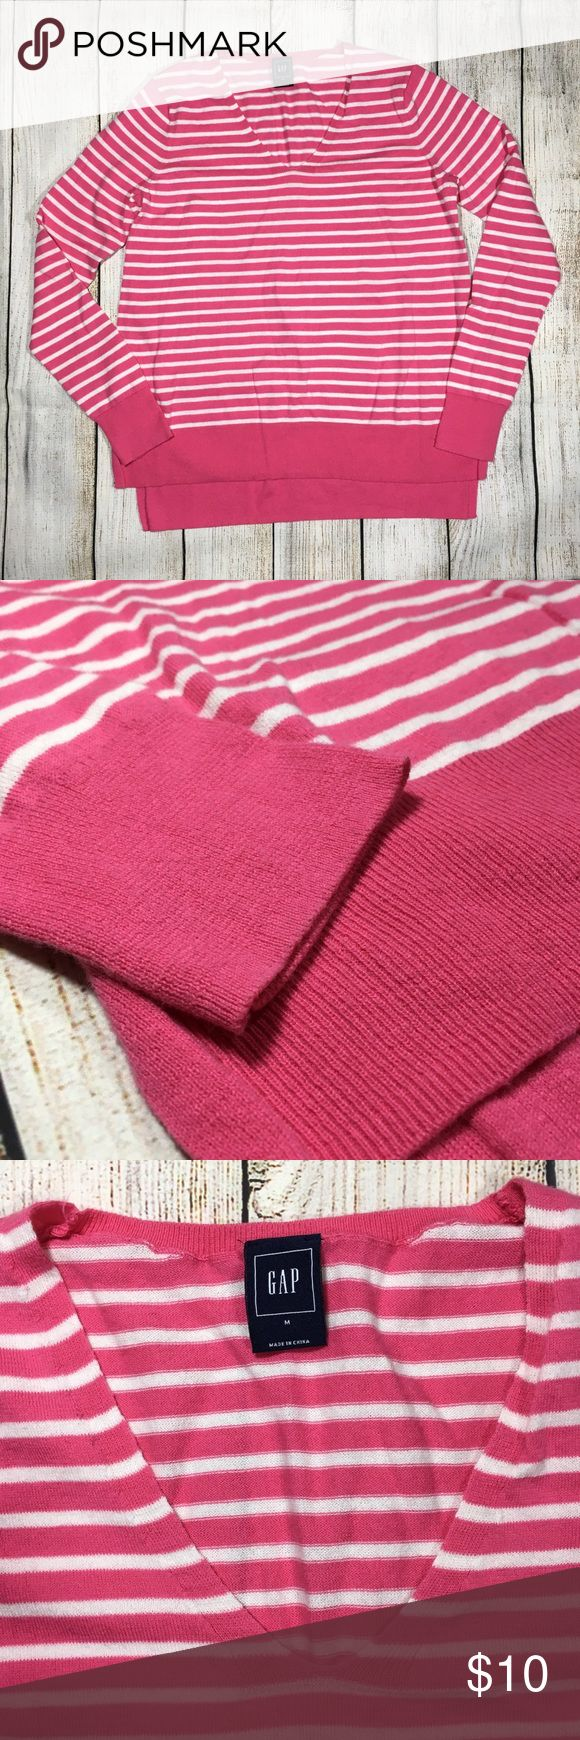 "Gap Womens V Neck Striped Lightweight Sweater M Gap  Womens Sz Medium V-Neck Sweater  Lightweight  Long Sleeve Striped - Pink White  Excellent condition! Measurements taken laying flat: Chest: 18.5"" Sleeve length from armpit: 19"" Overall length front: 23.5"" back: 25.5"" Bottom width: 20.75"" GAP Sweaters V-Necks"